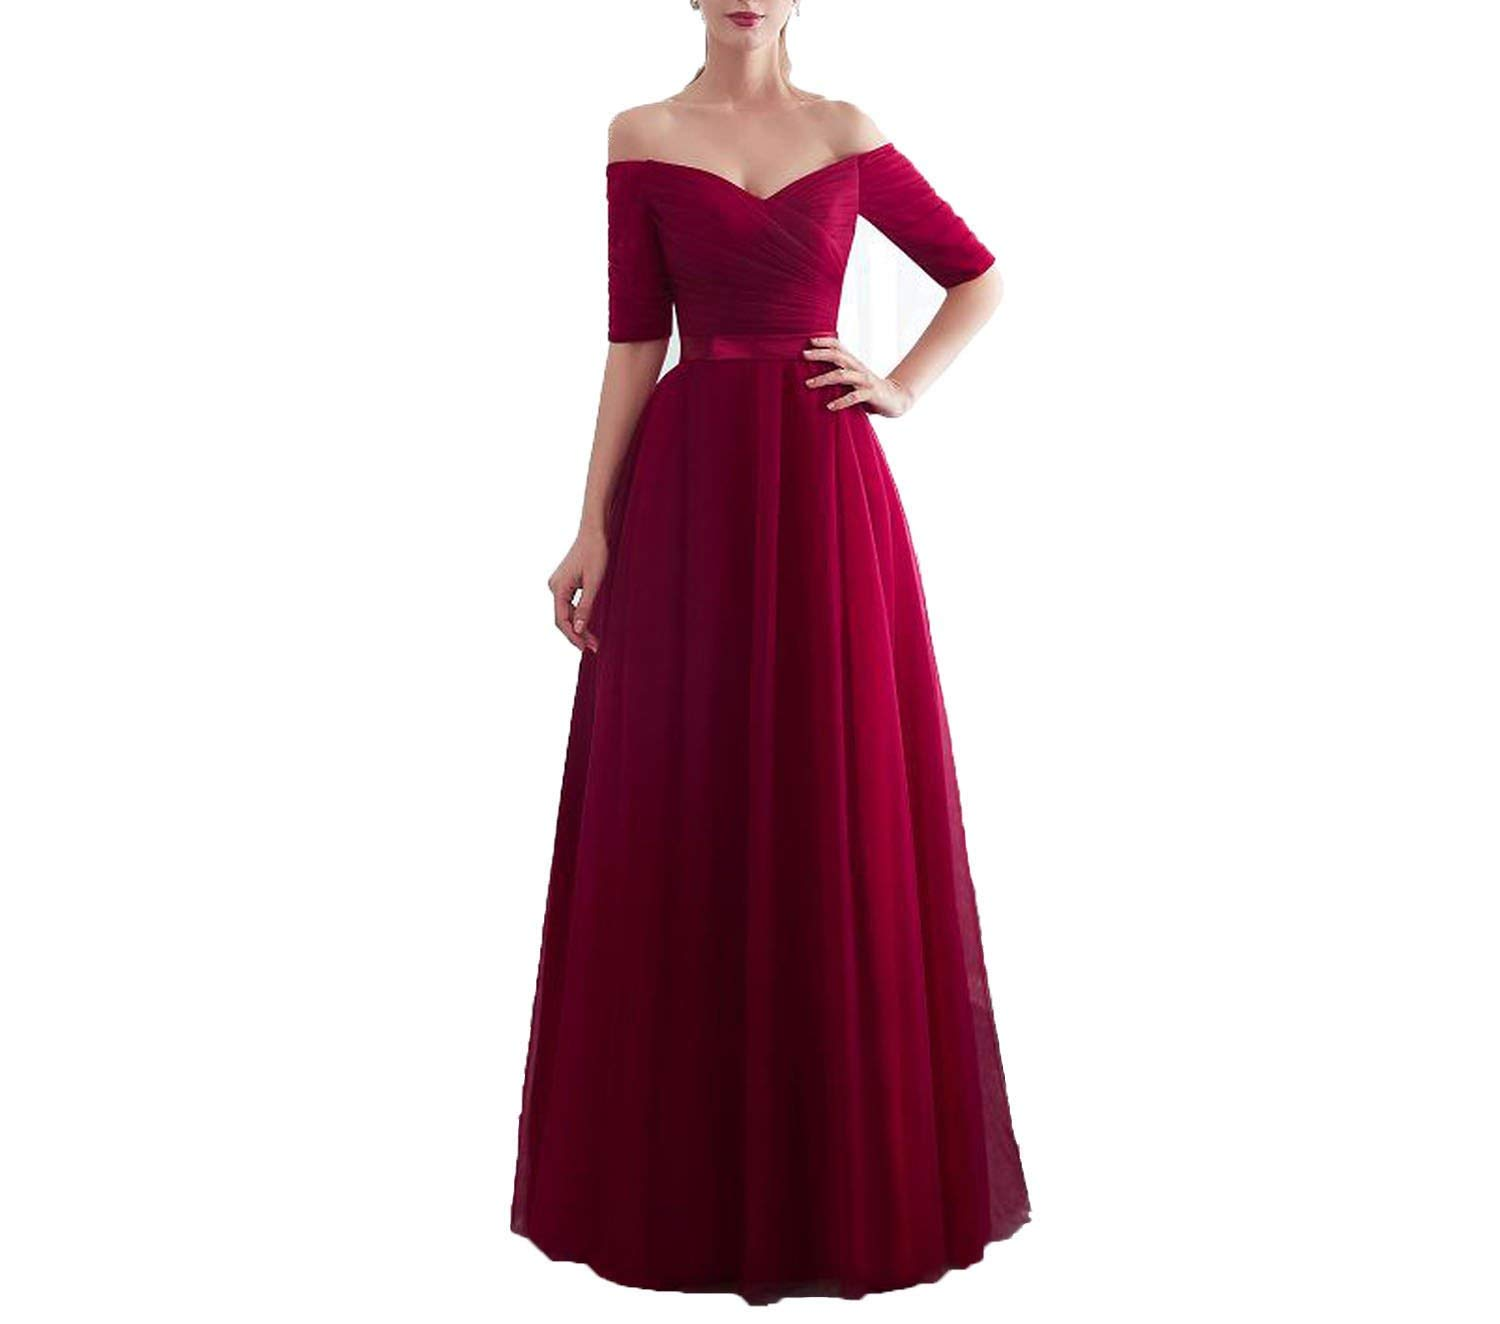 Red Bridesmaid Dresses Satin Tulle A-Line